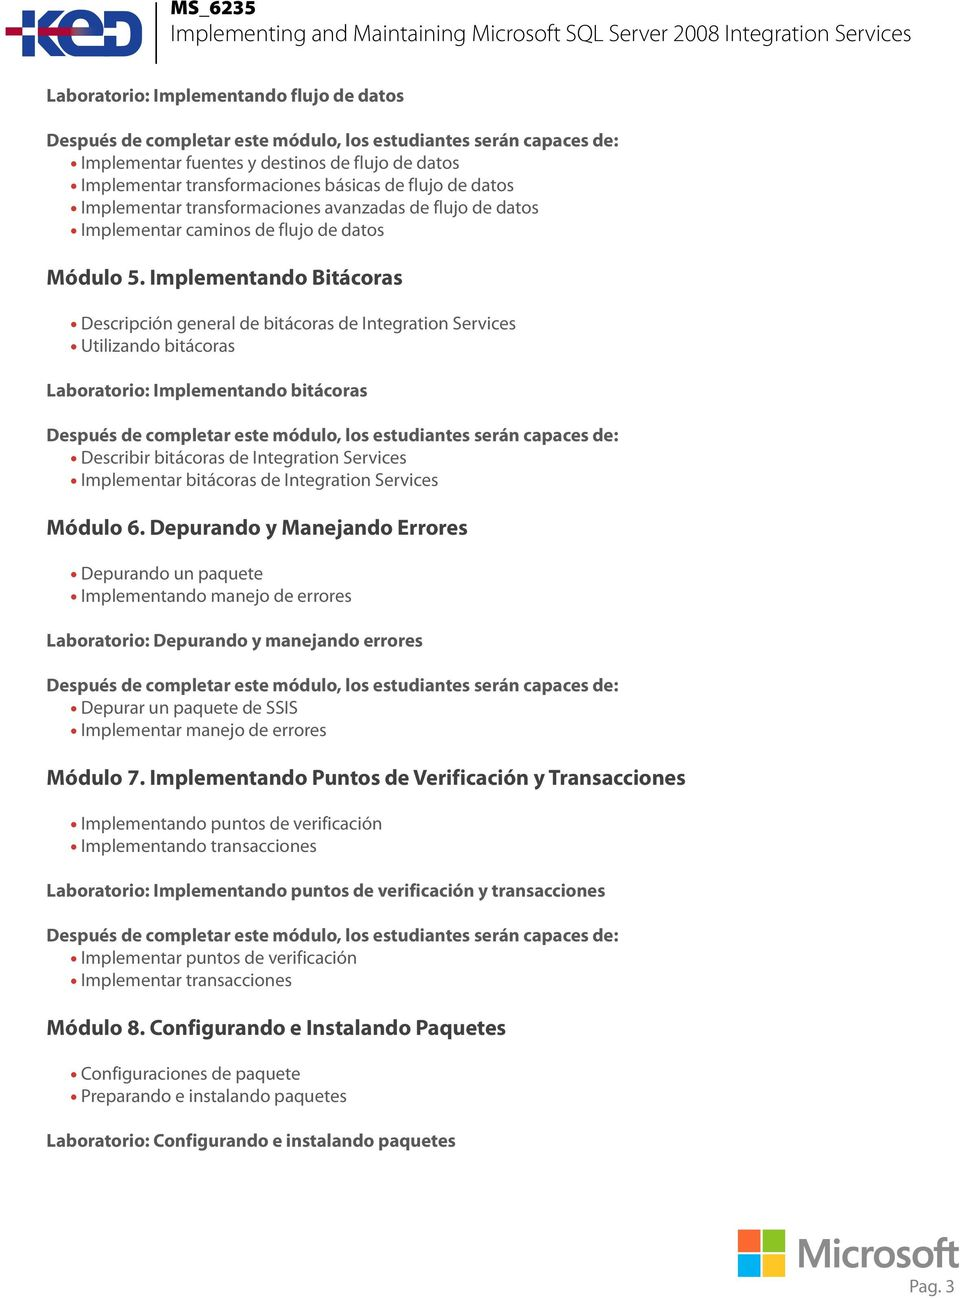 Implementando Bitácoras Descripción general de bitácoras de Integration Services Utilizando bitácoras Laboratorio: Implementando bitácoras Describir bitácoras de Integration Services Implementar